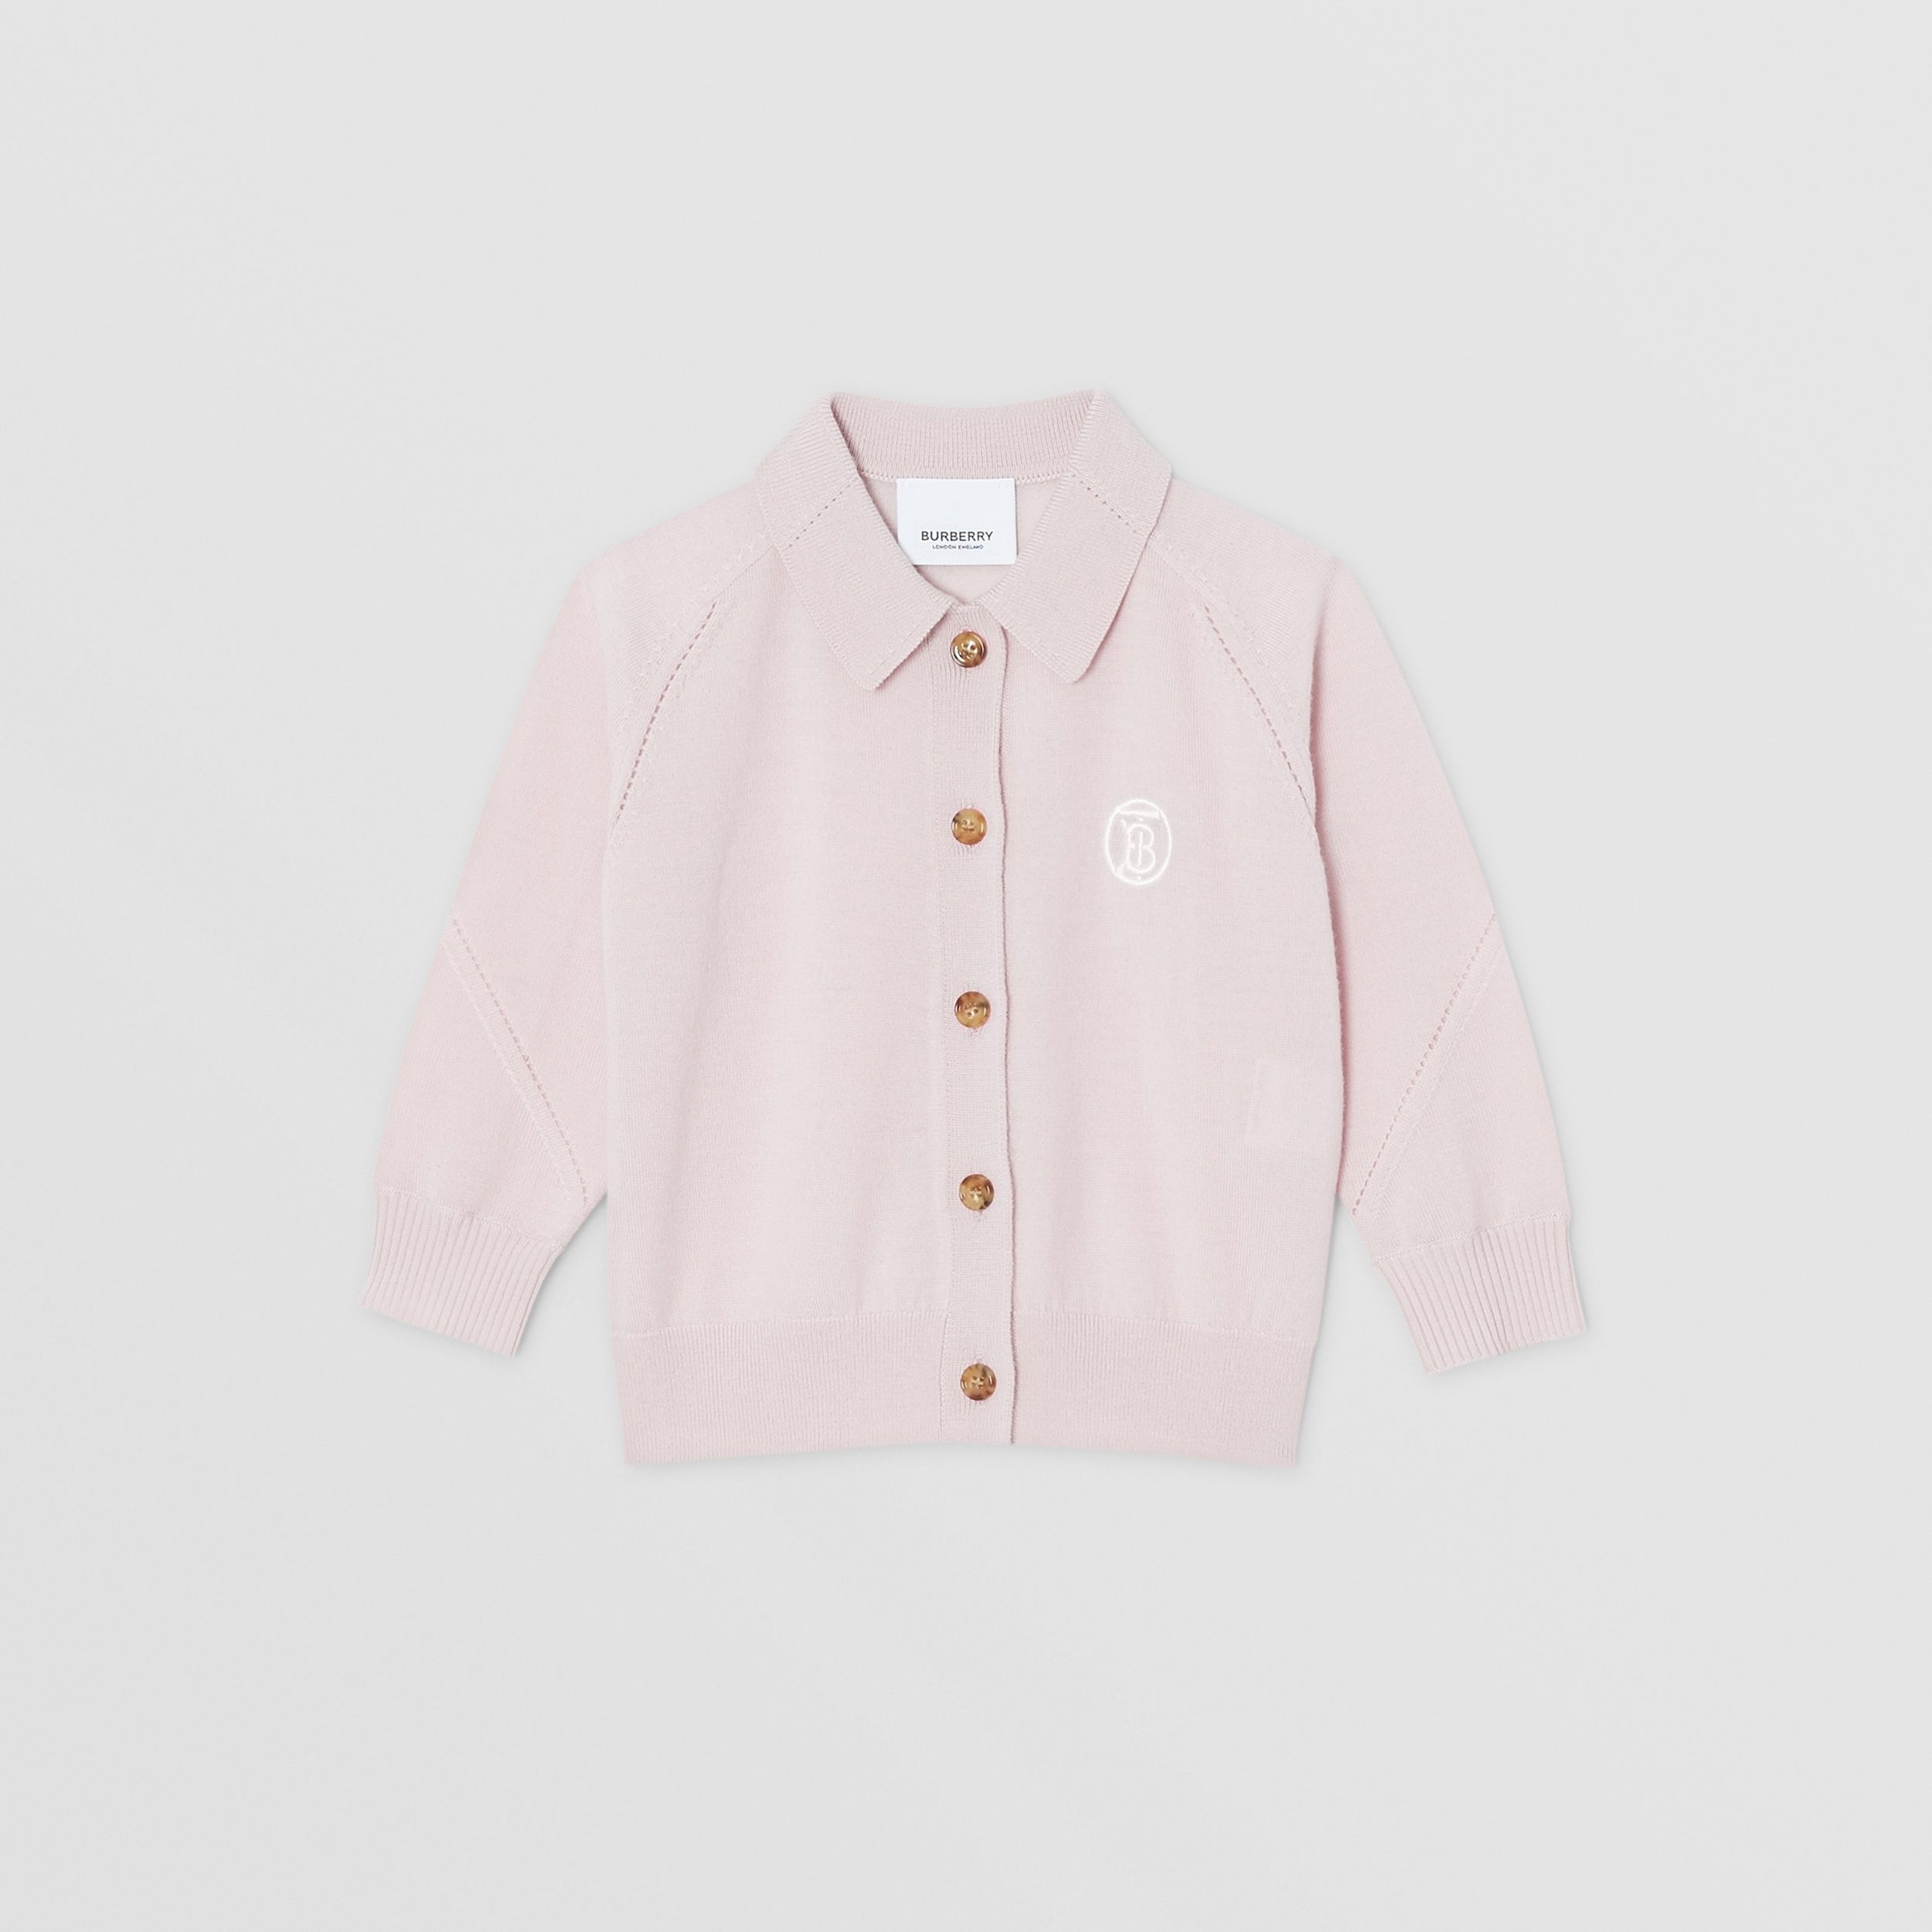 Monogram Motif Merino Wool Cardigan in Light Pink - Children | Burberry - 1